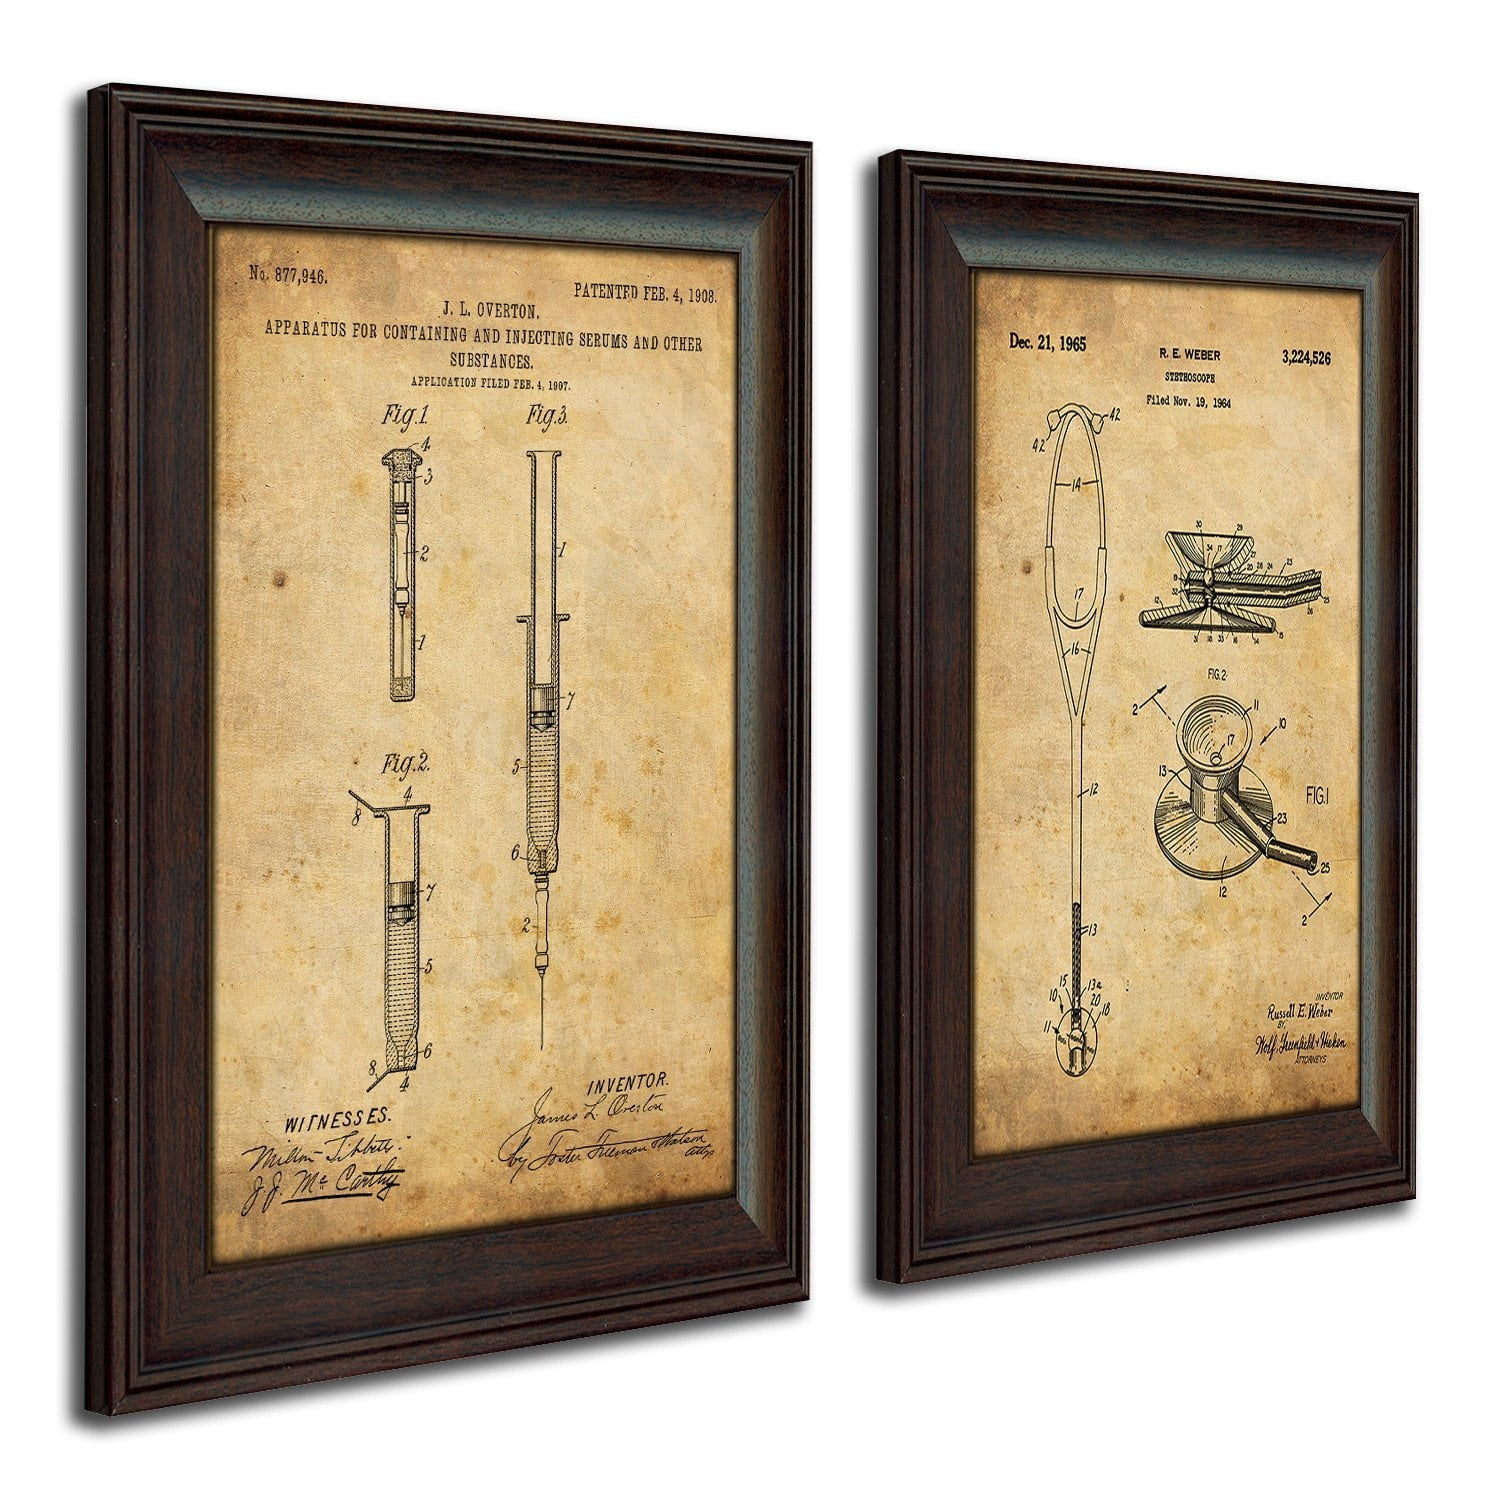 Nurse Patent Framed Wall Art Gift Set | Personal-Prints